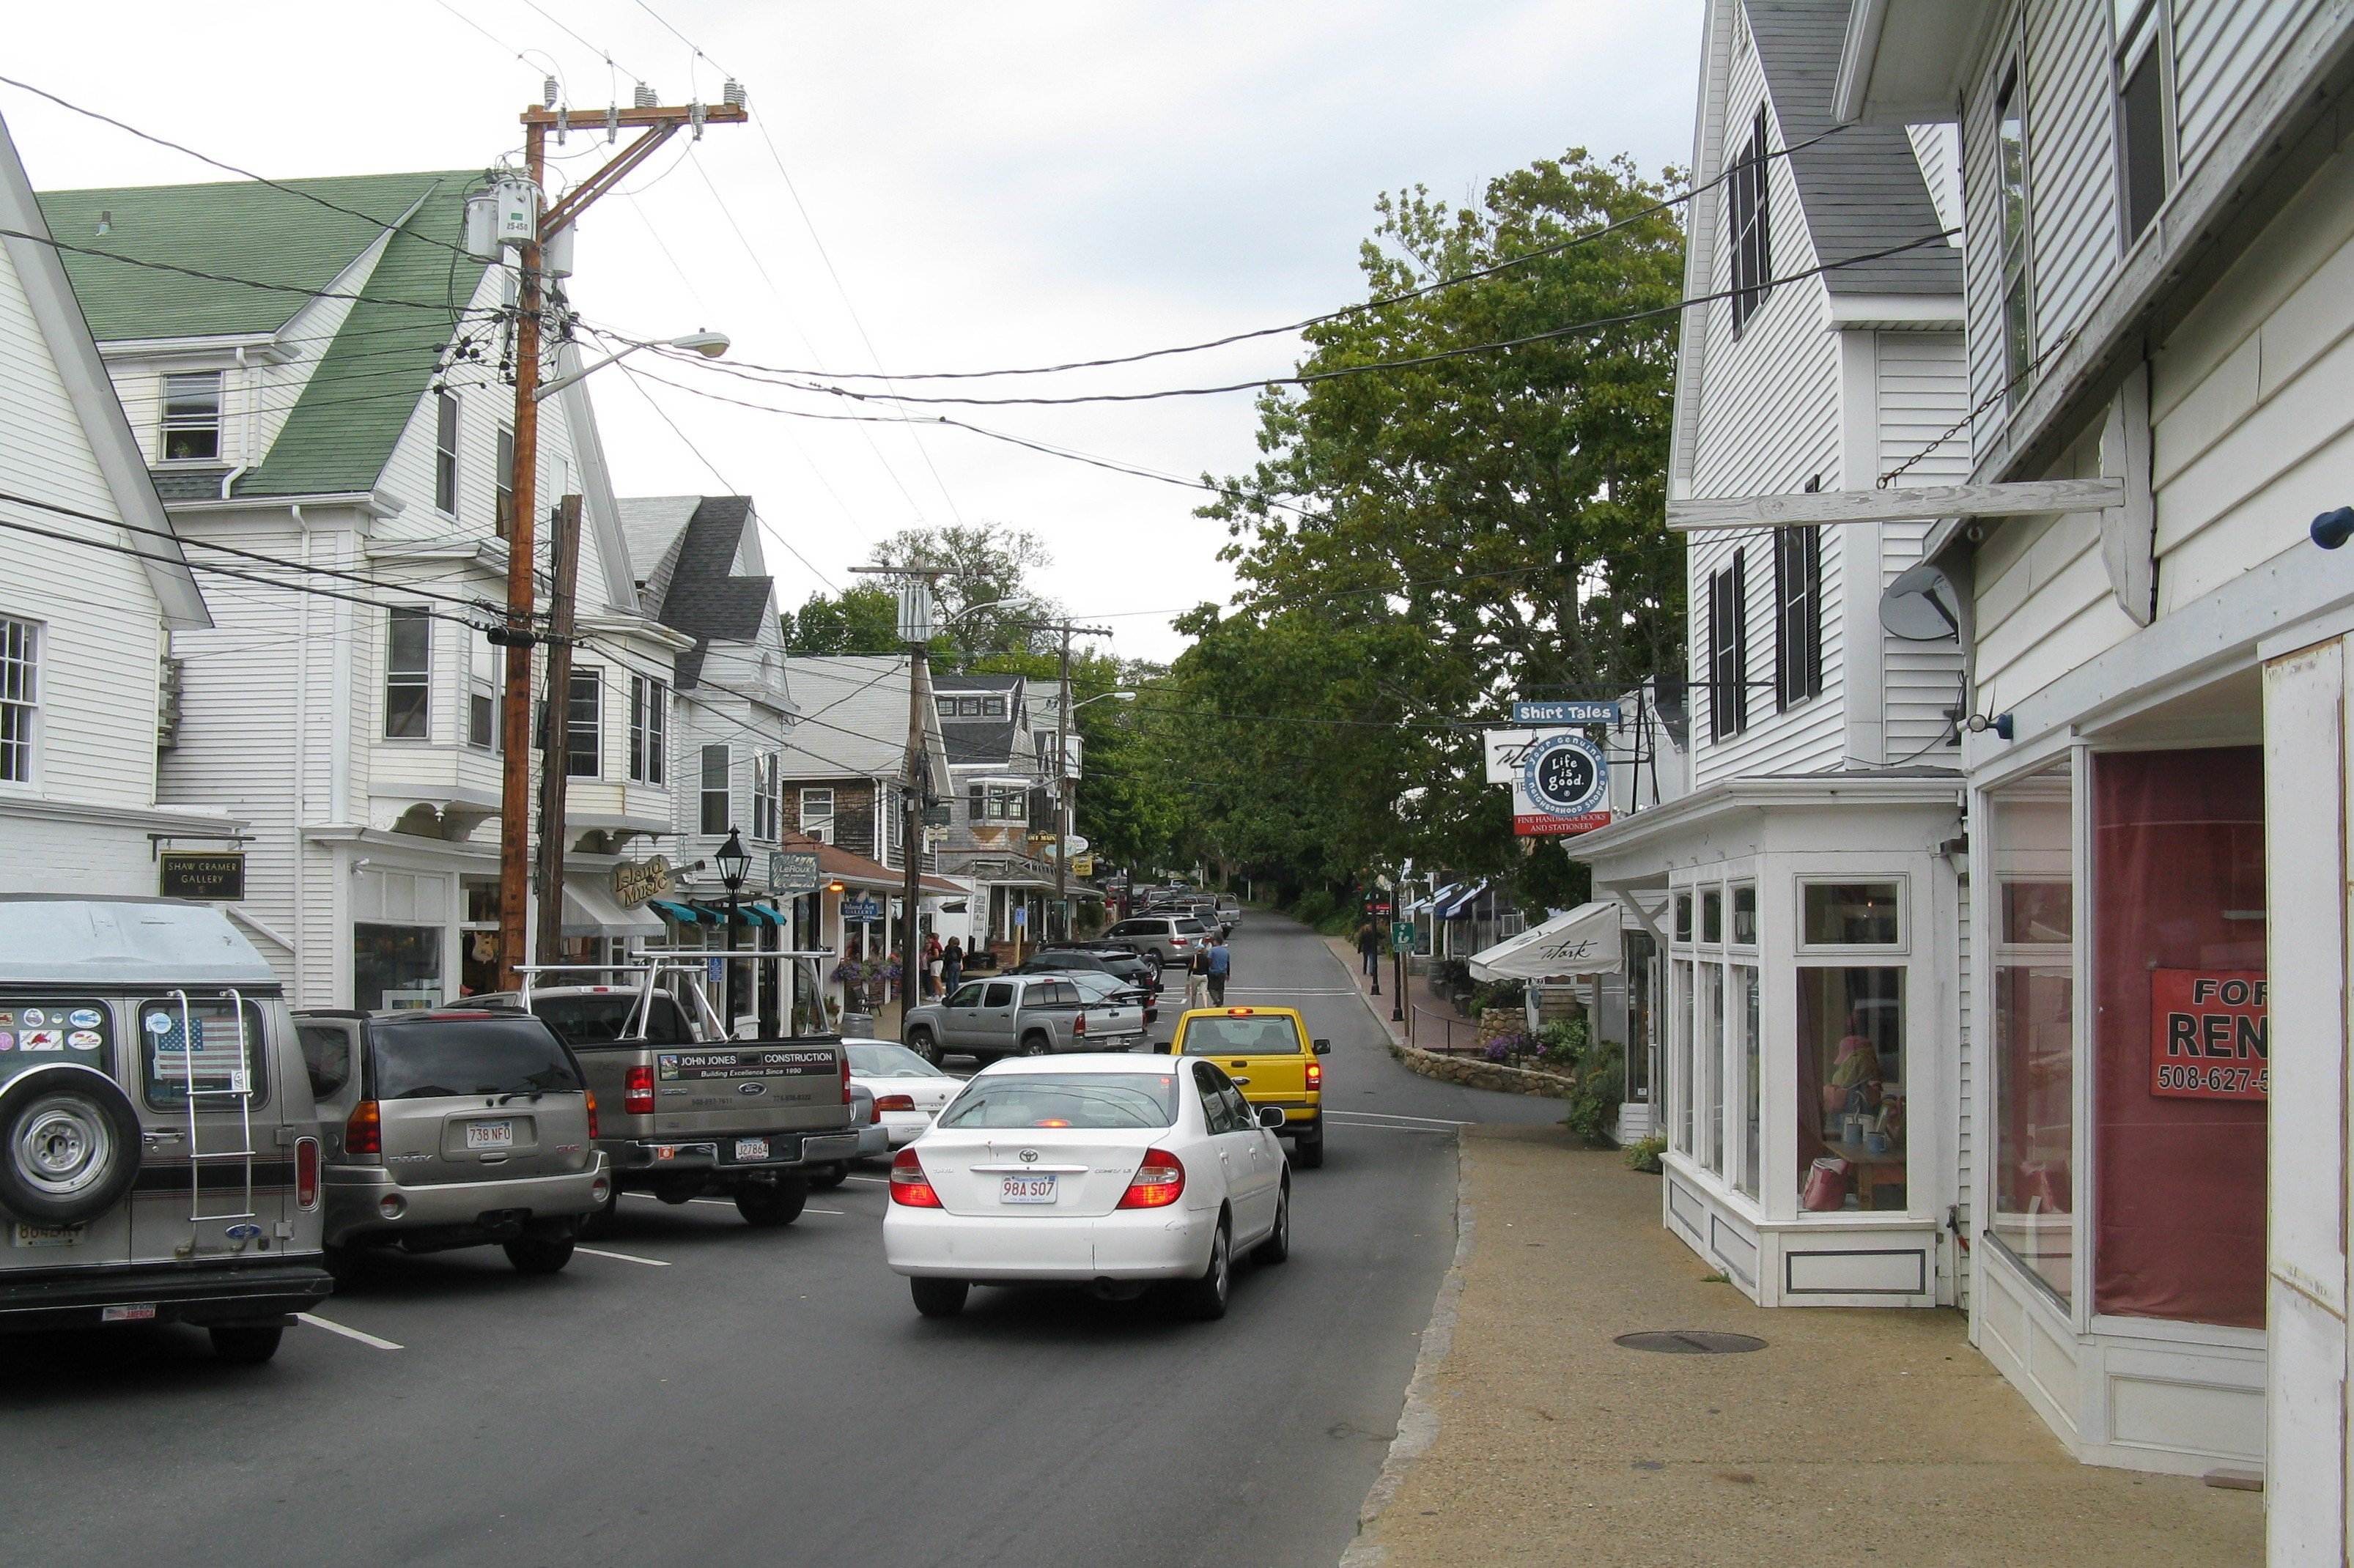 File Main Street Vineyard Haven MA Wikimedia mons